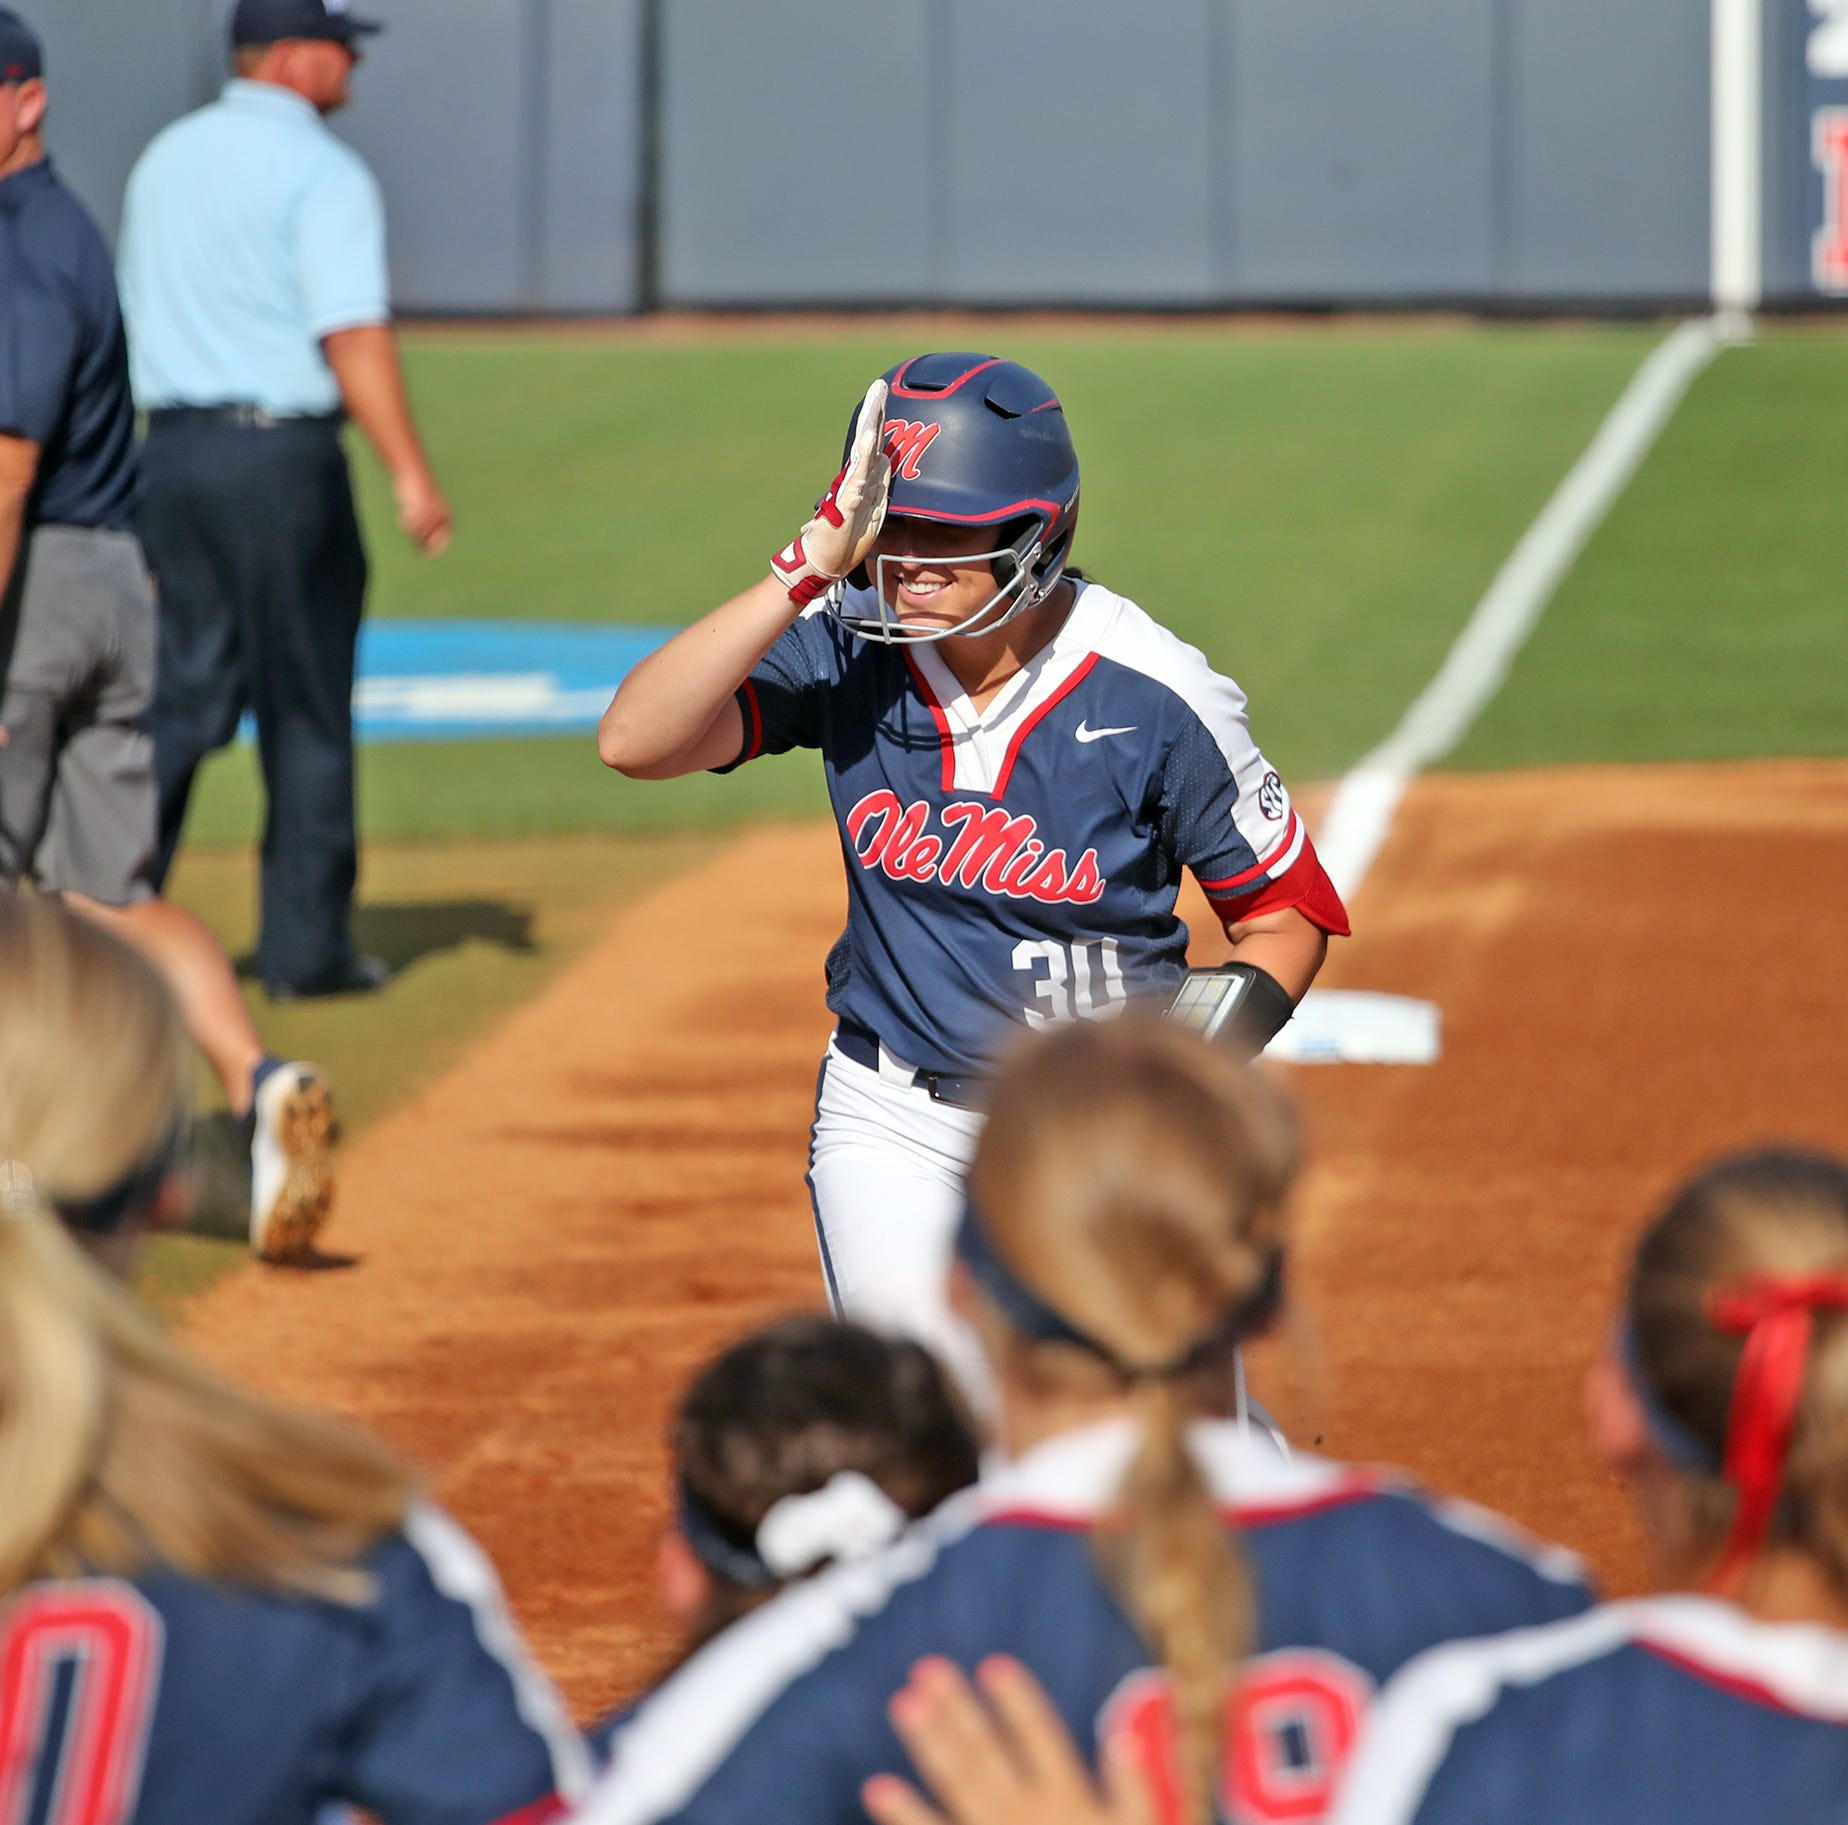 Ole Miss survives first elimination game, advances to Oxford Regional finals vs. Louisiana